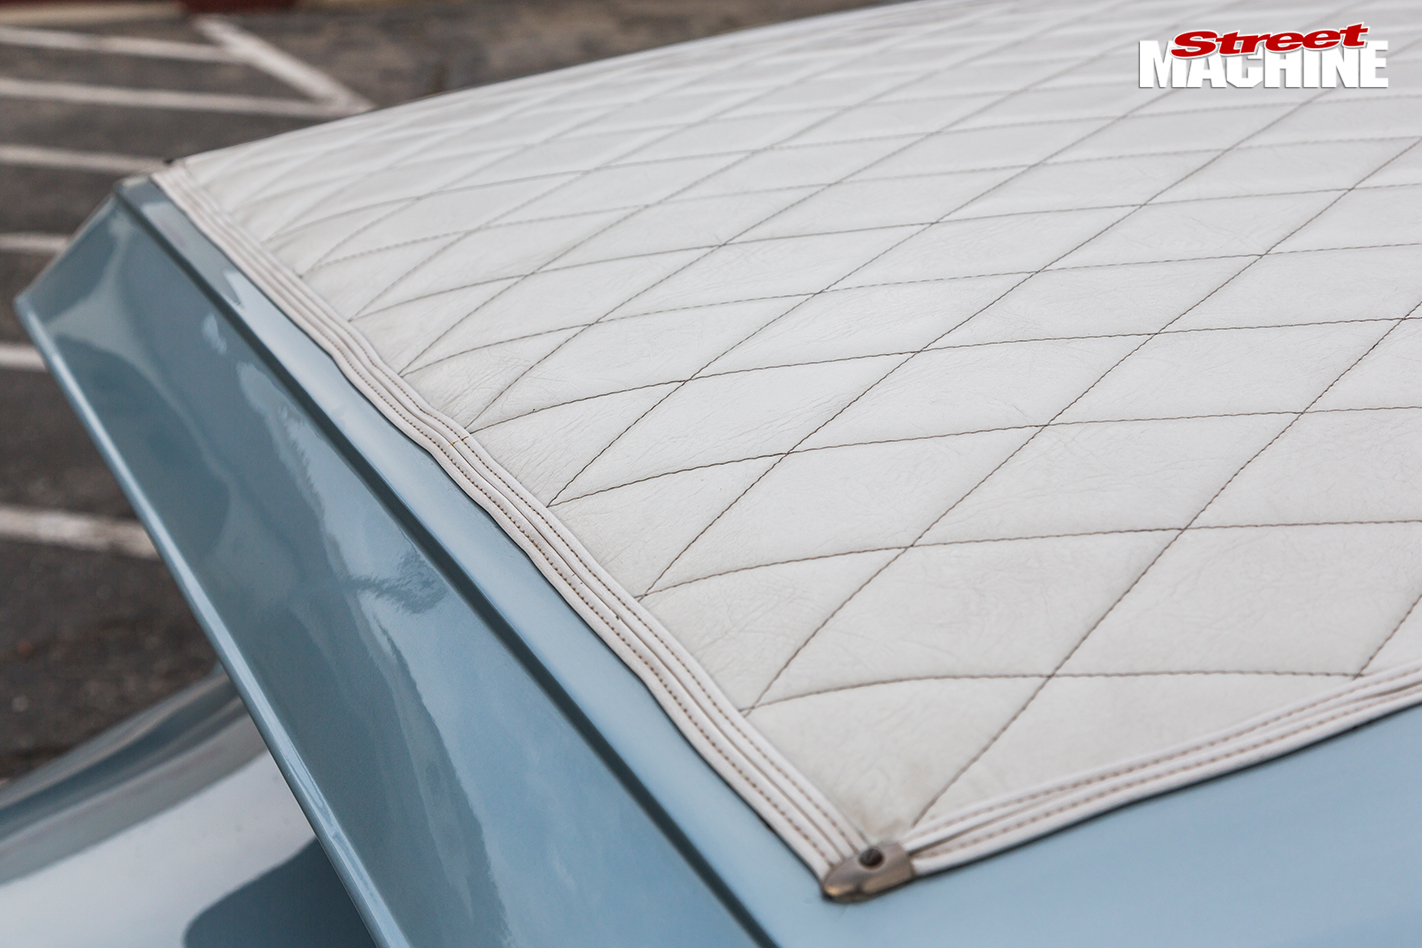 Ford -coupe -live -wire -roof -lining